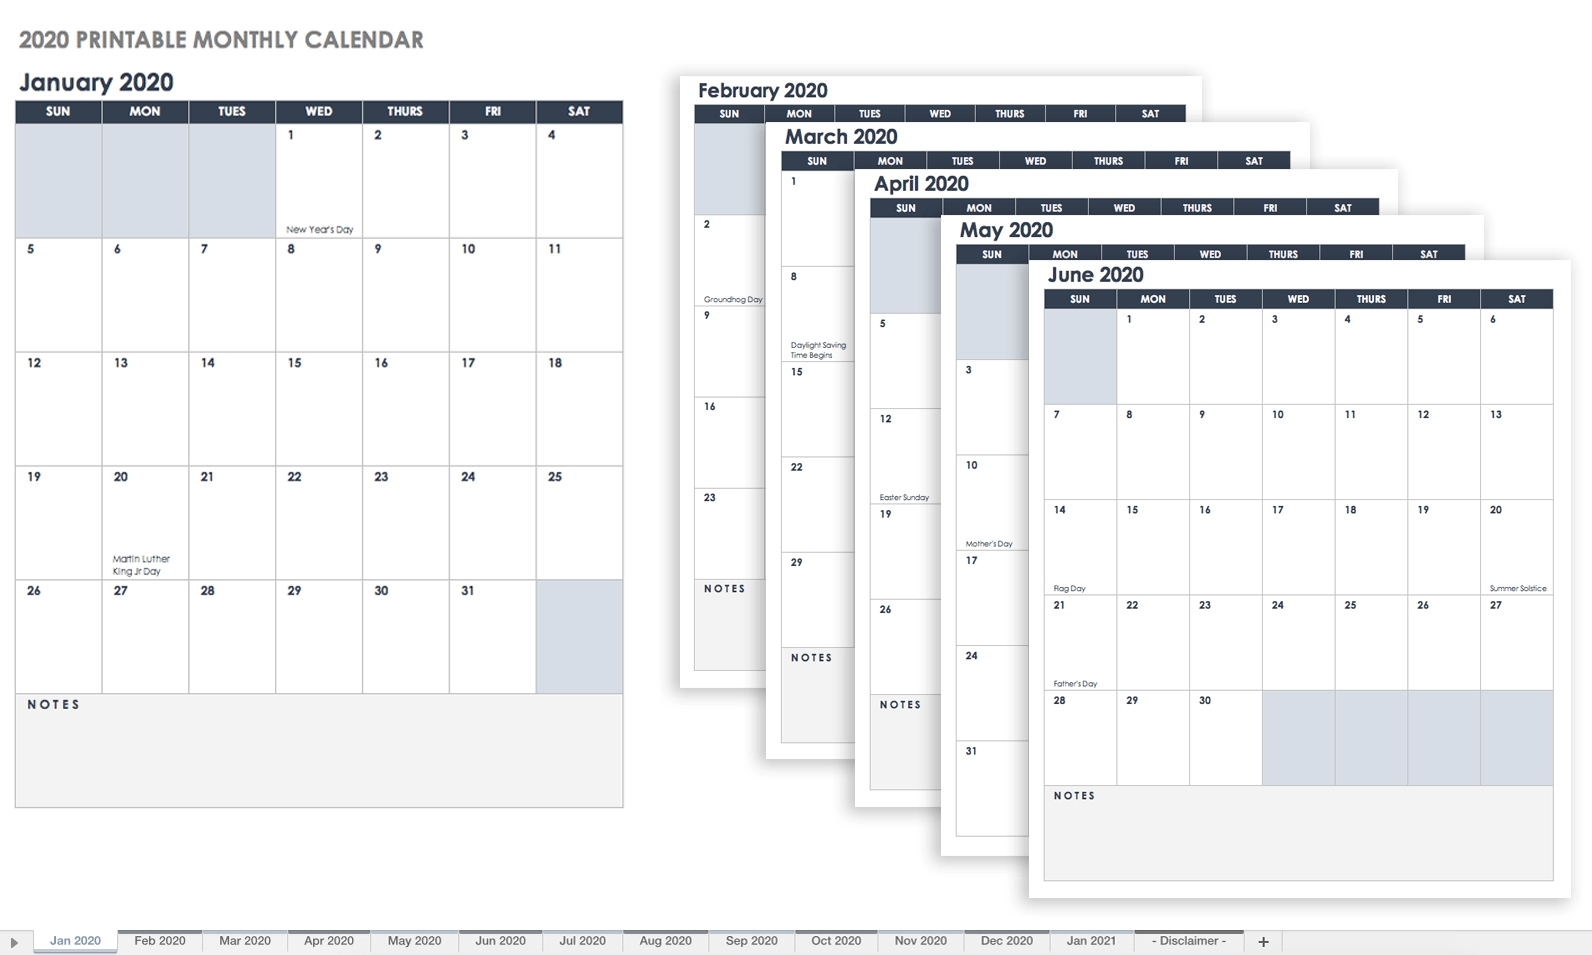 Free, Printable Excel Calendar Templates For 2019 & On   Smartsheet within Calendar To Type On 2019 - 2020